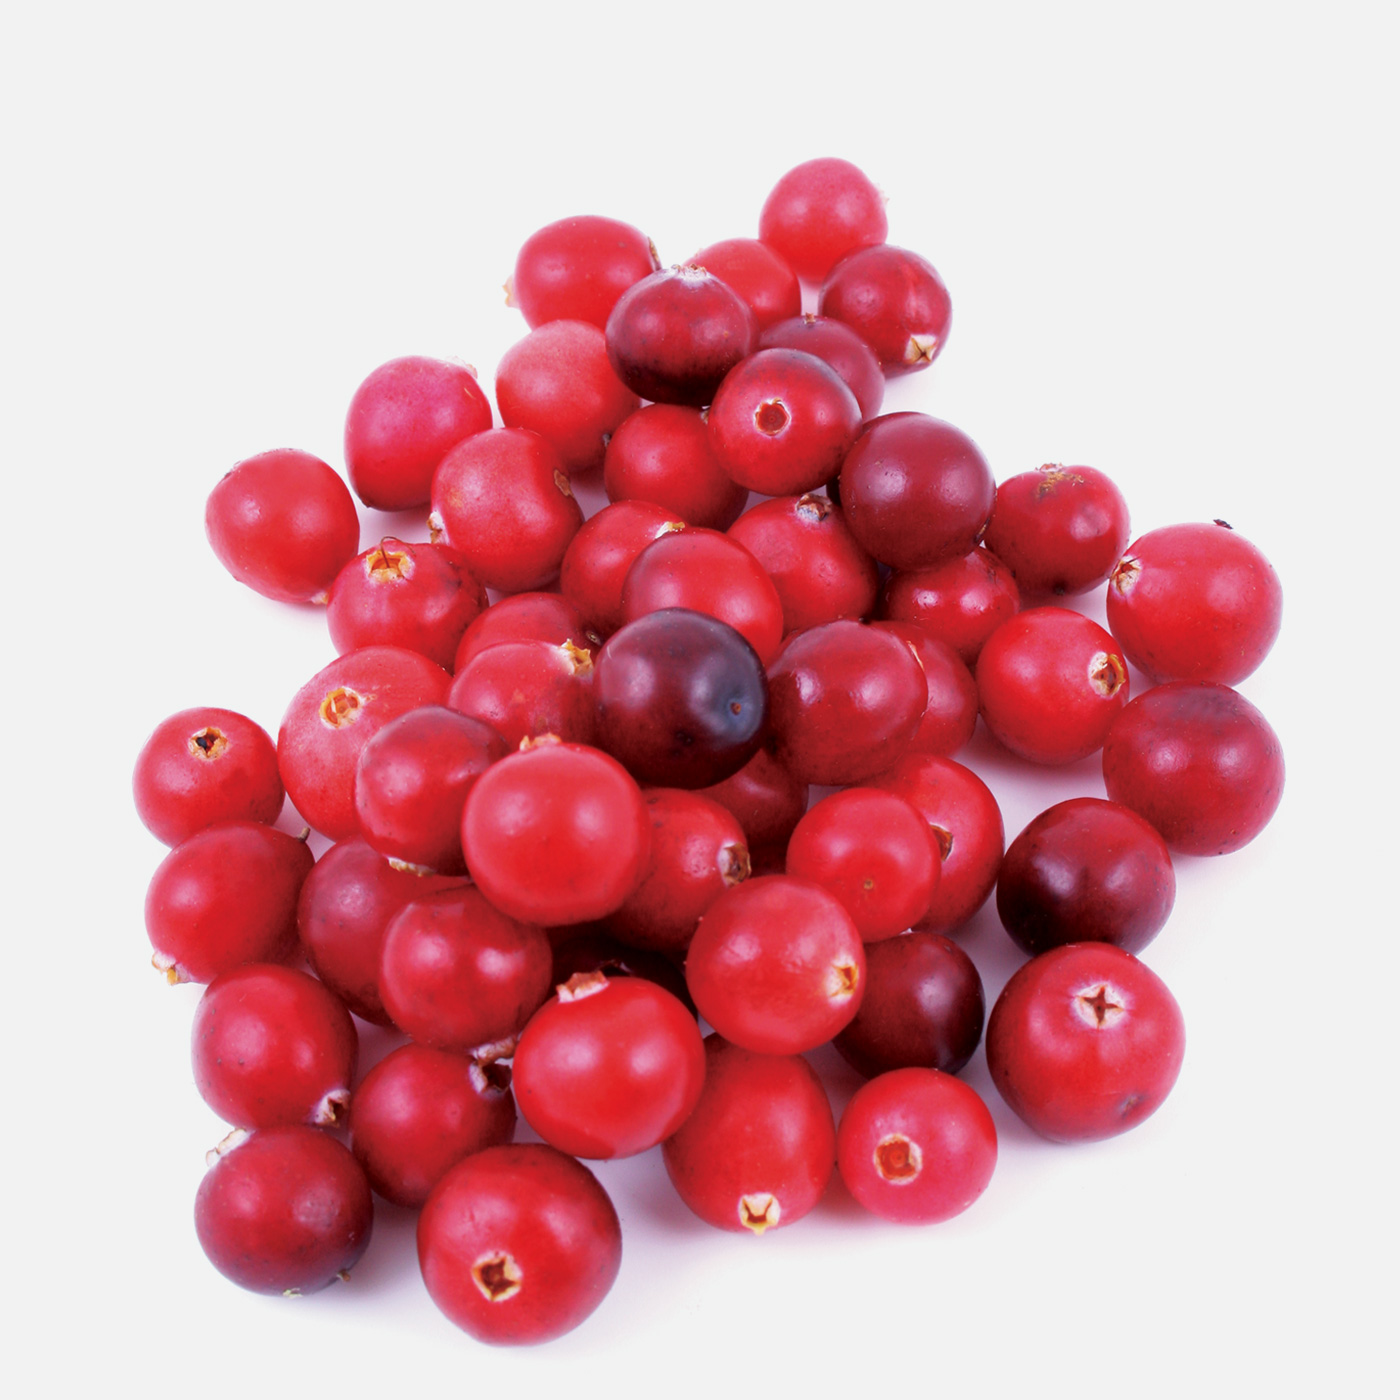 Using cranberries, unlock the possibilities for flavours, aromas and sweeteners in animal feed and pet food production